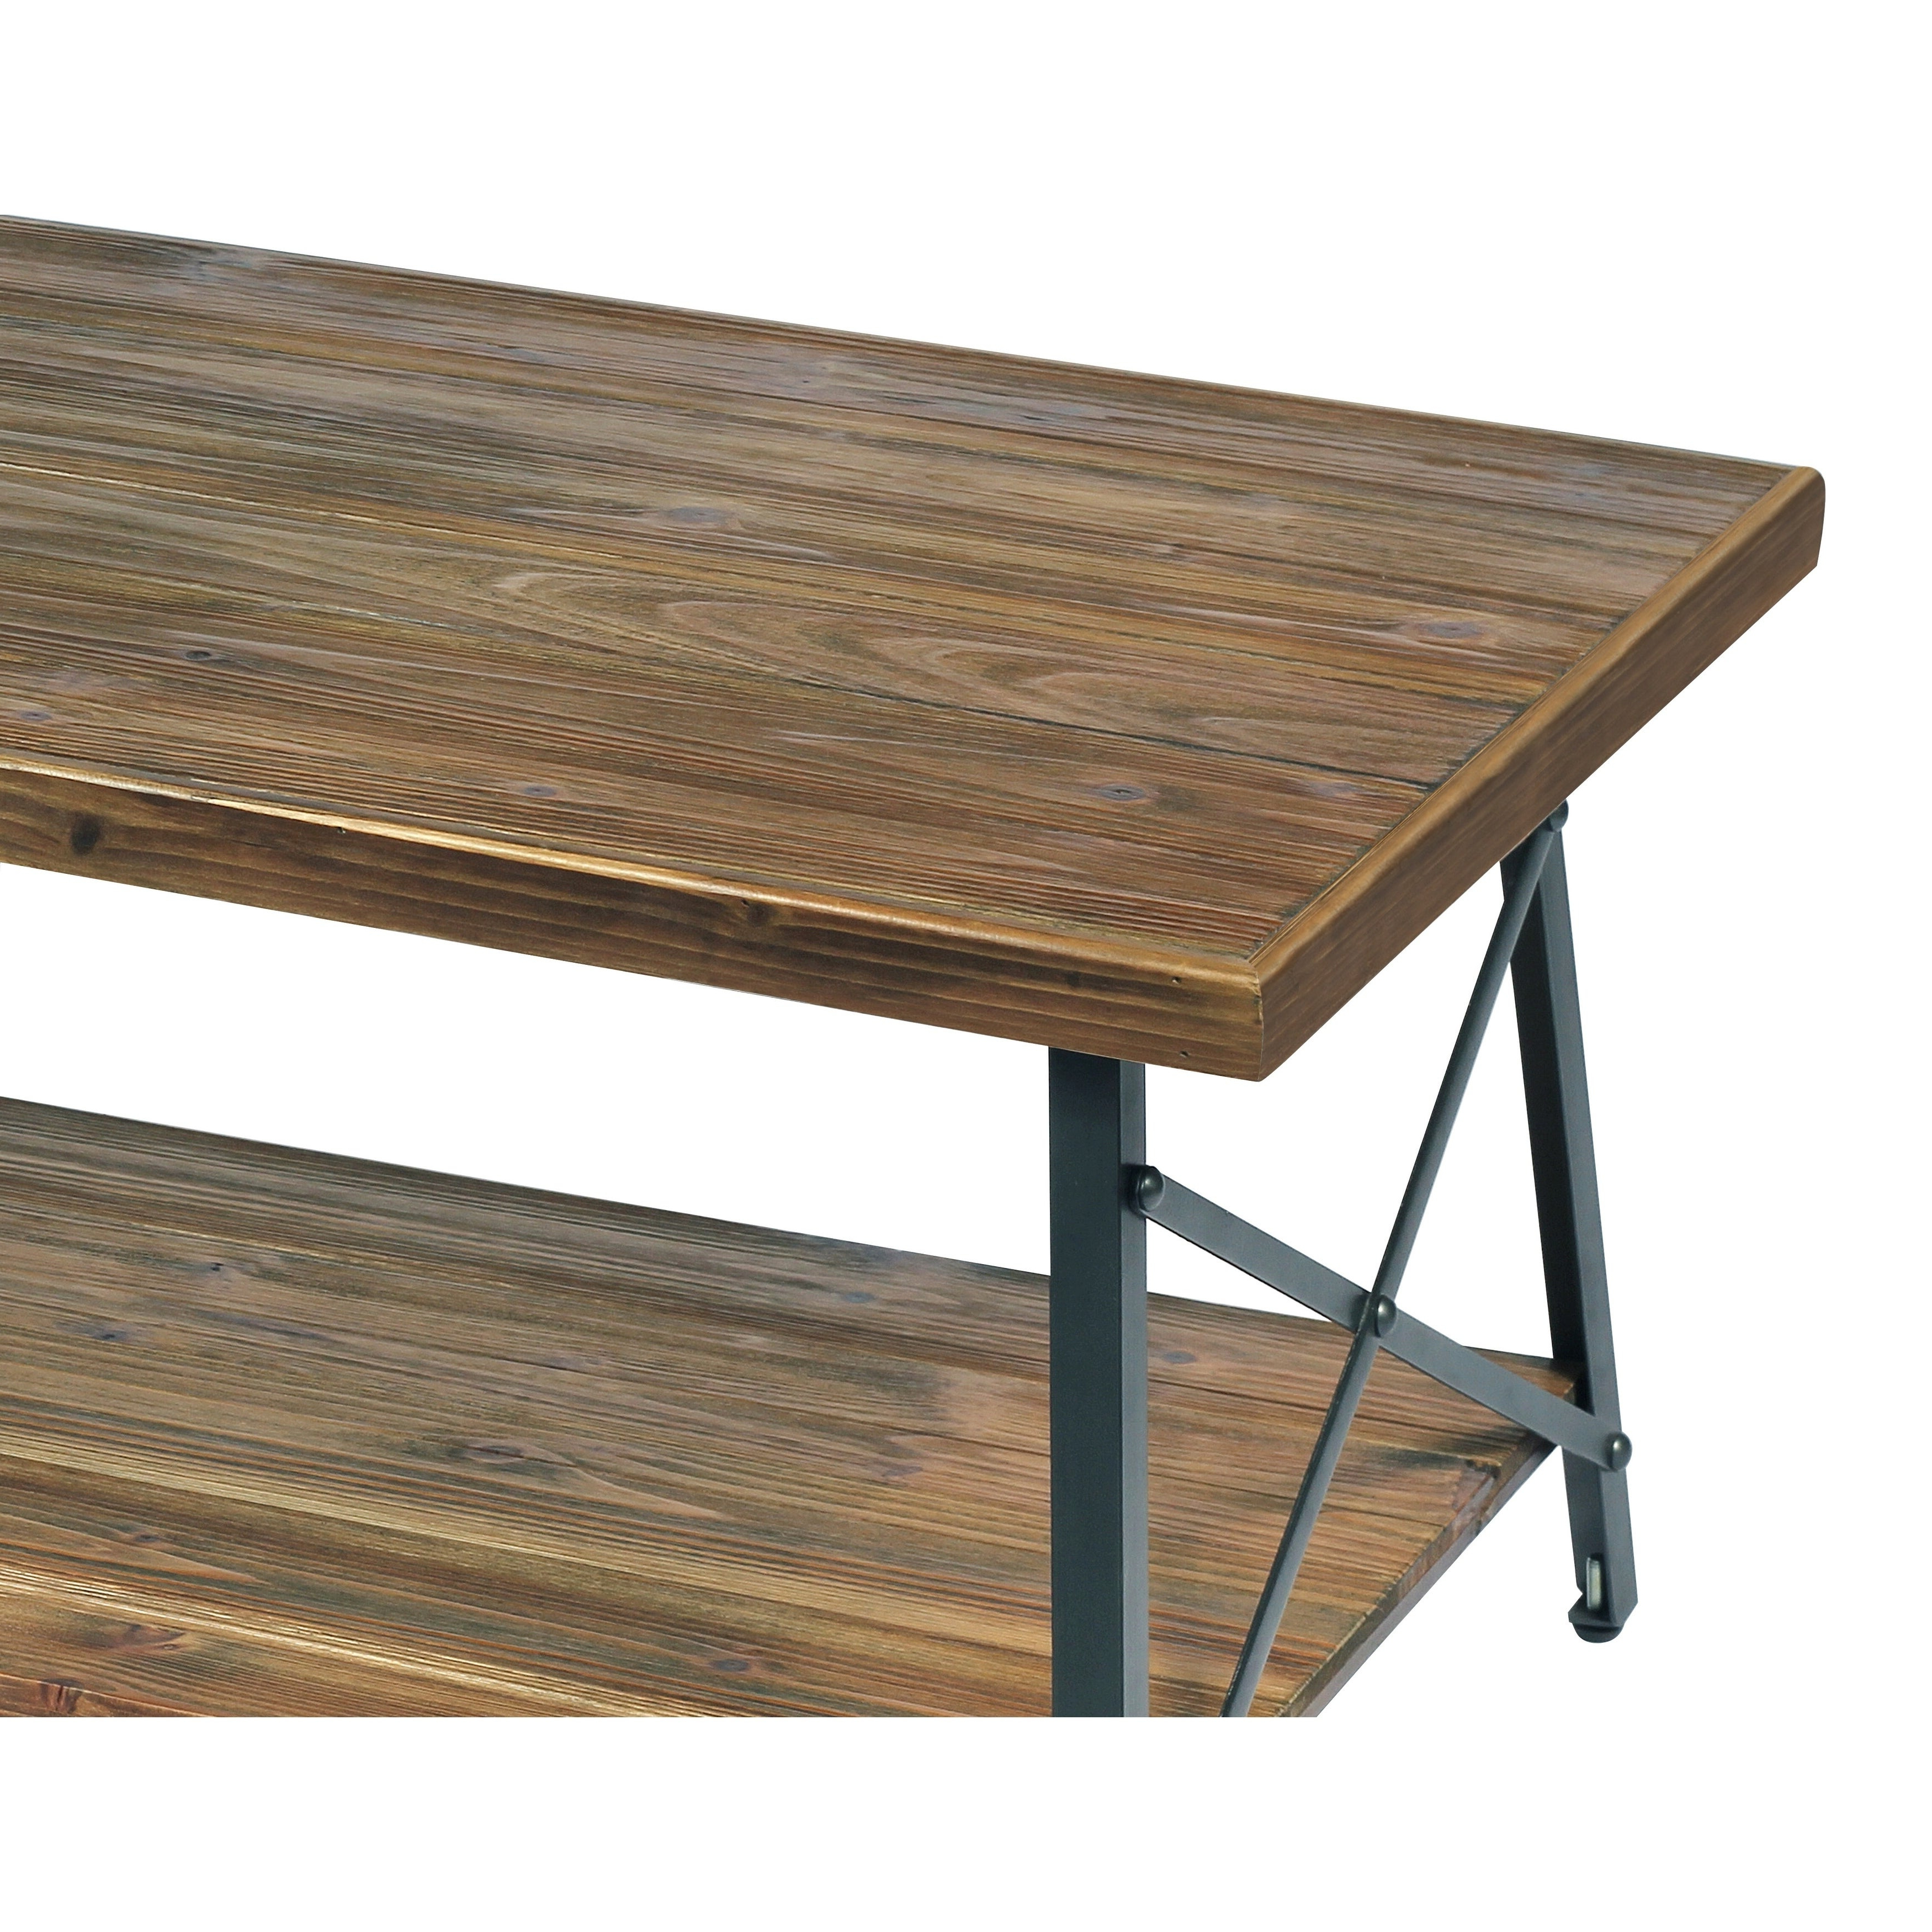 Carbon Loft Oliver Modern Rustic Natural Fir Coffee Table Intended For Well Known Carbon Loft Kenyon Natural Rustic Coffee Tables (View 15 of 20)